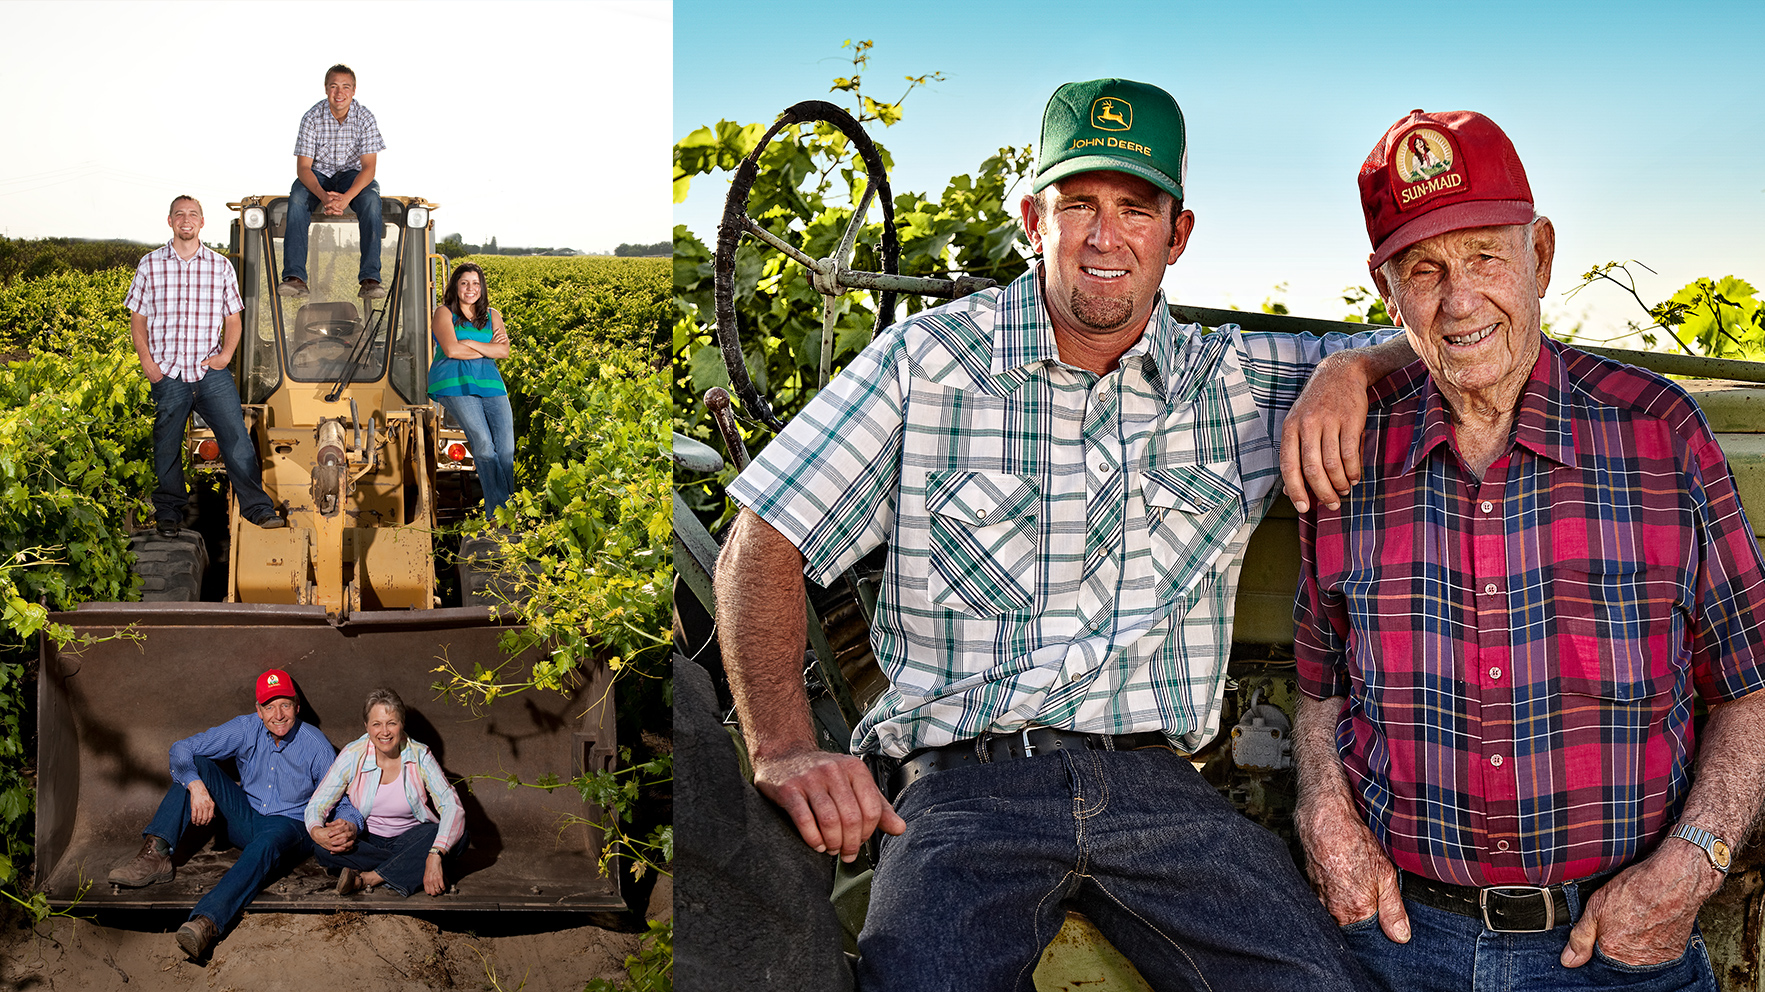 A collection of the faces of Sun-Maid growers. Left side: growers sitting on a tractor. Right side: up-close shot of two men smiling.